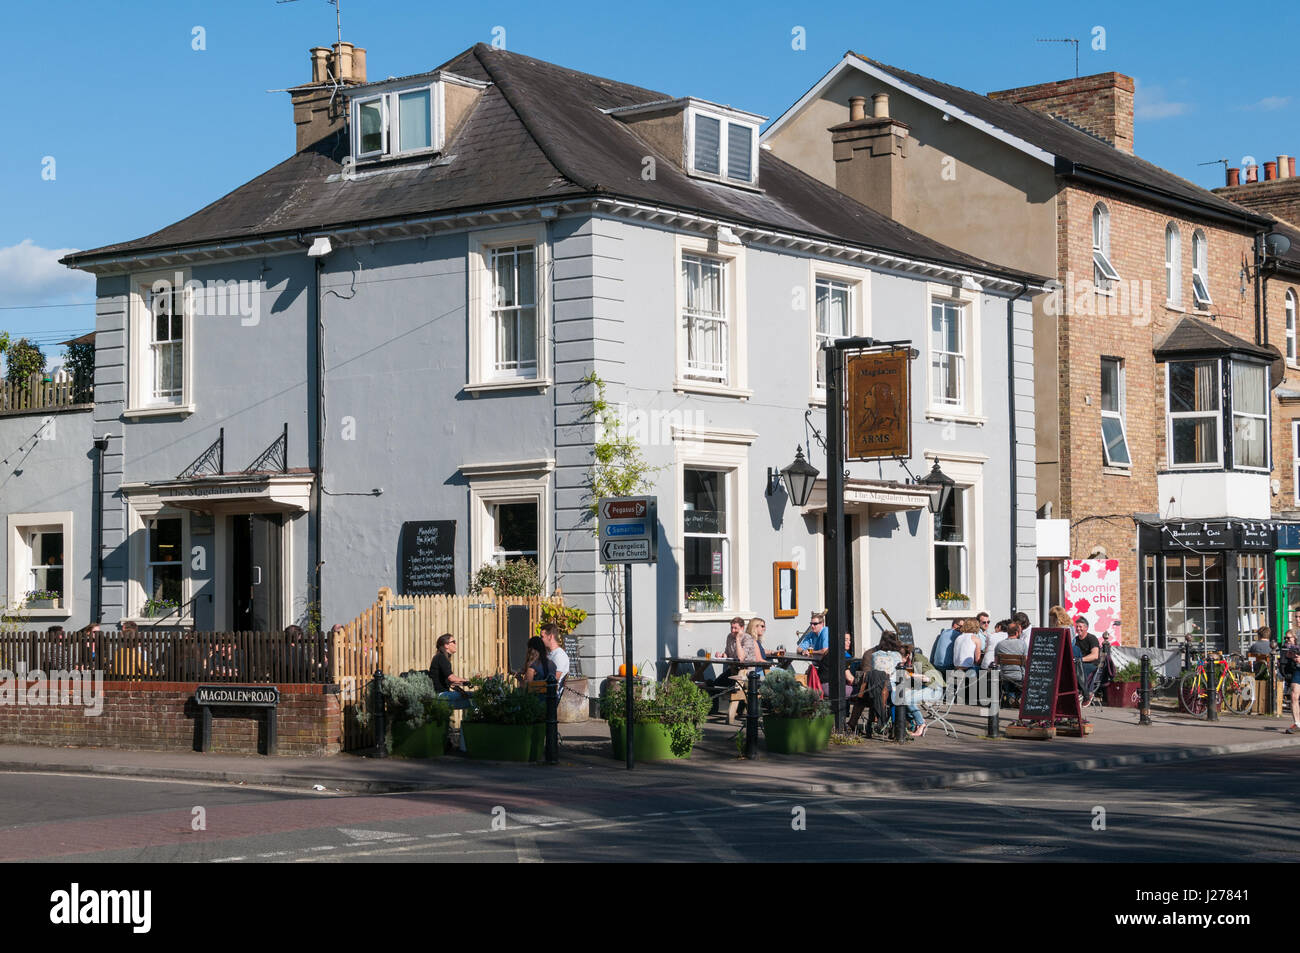 The Magdalen Arms pub, Iffley Road, Oxford, United KingdomStock Photo